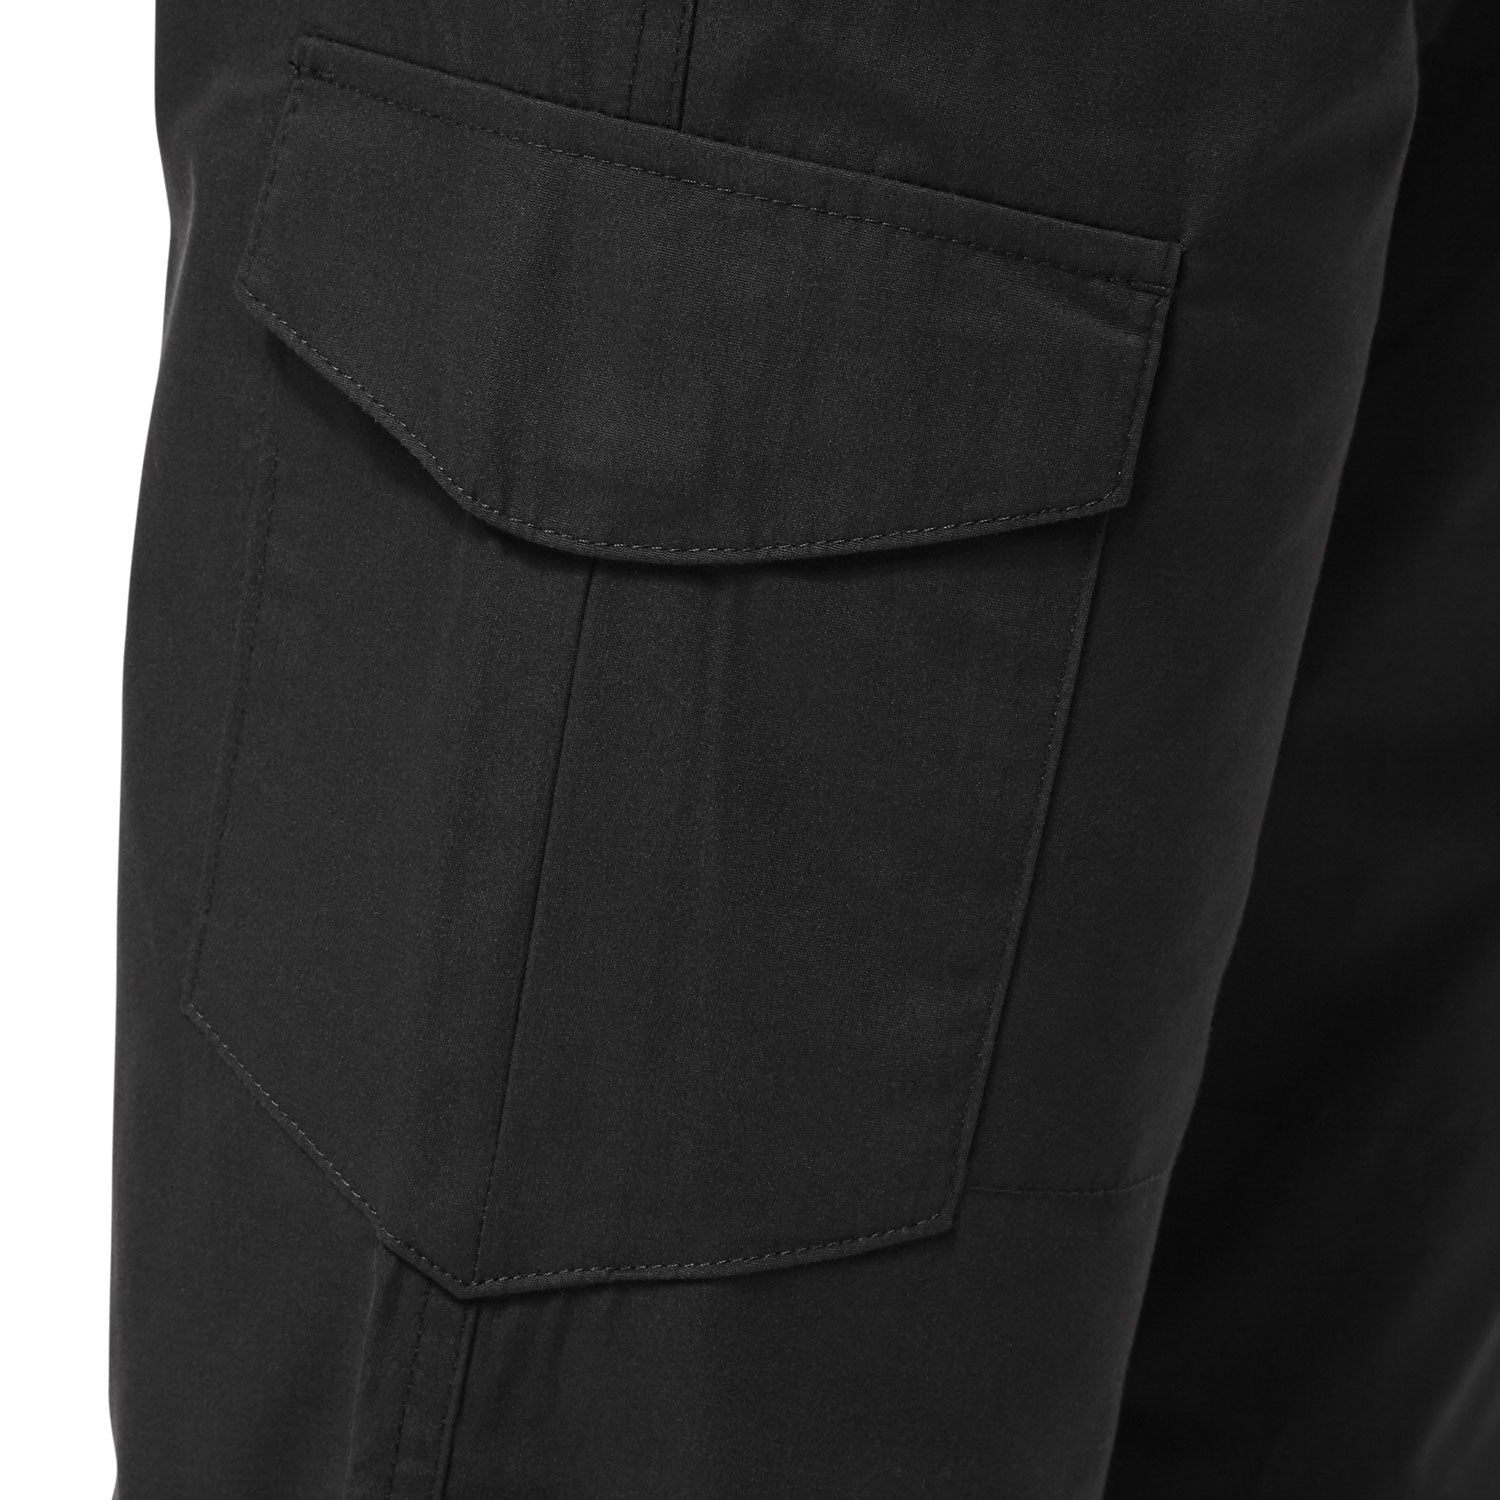 Flap covered cargo pocket